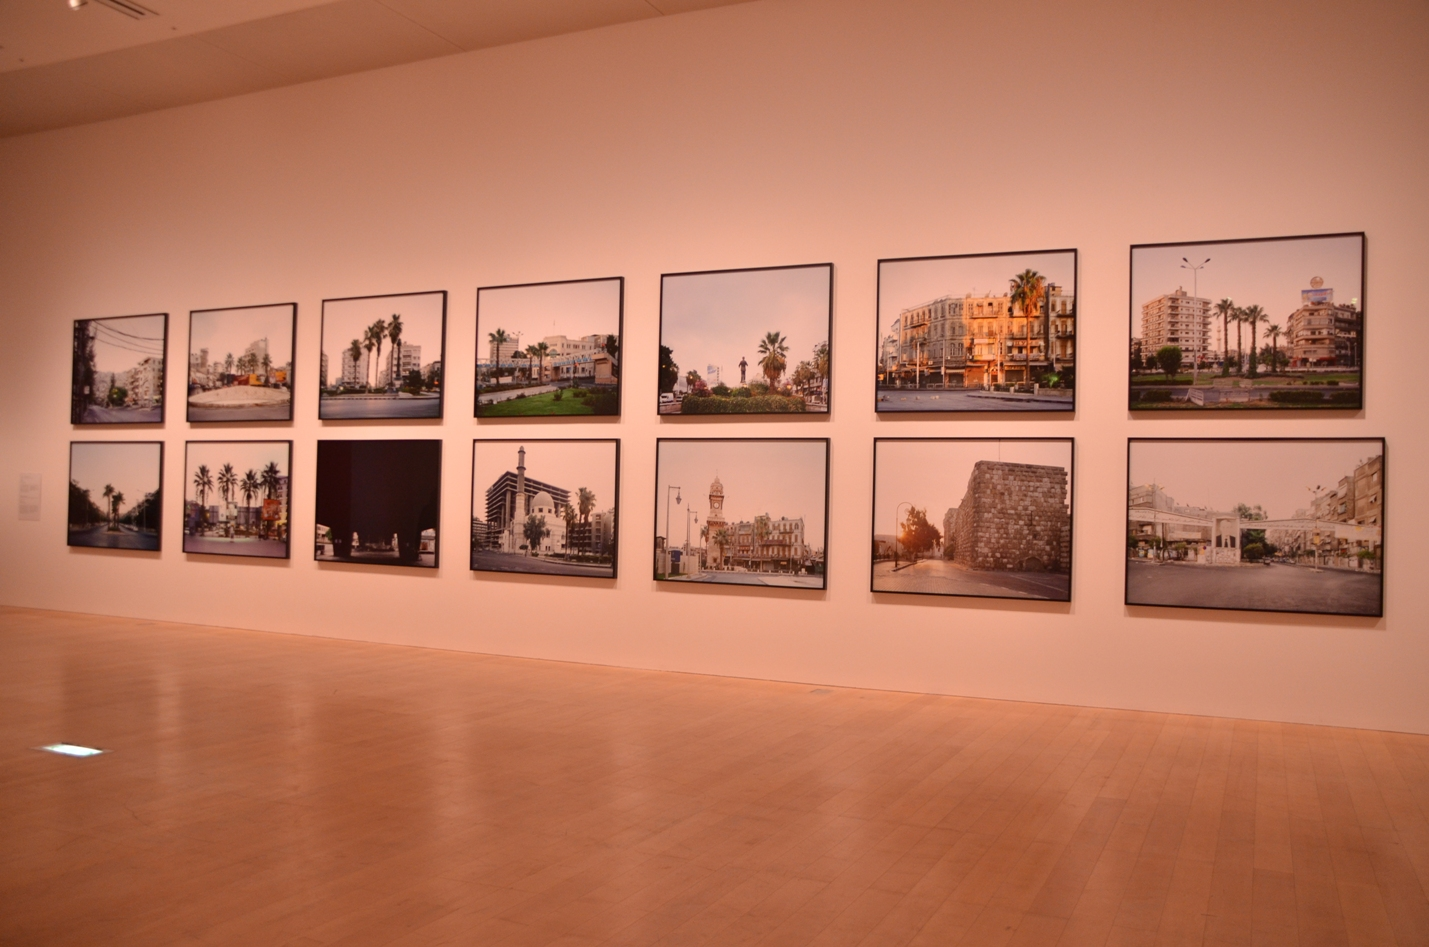 Hrair Sarkissian, Execution Squares, 2008 - The Artist and Mori Art Museum (photo Mohammed Kazem)